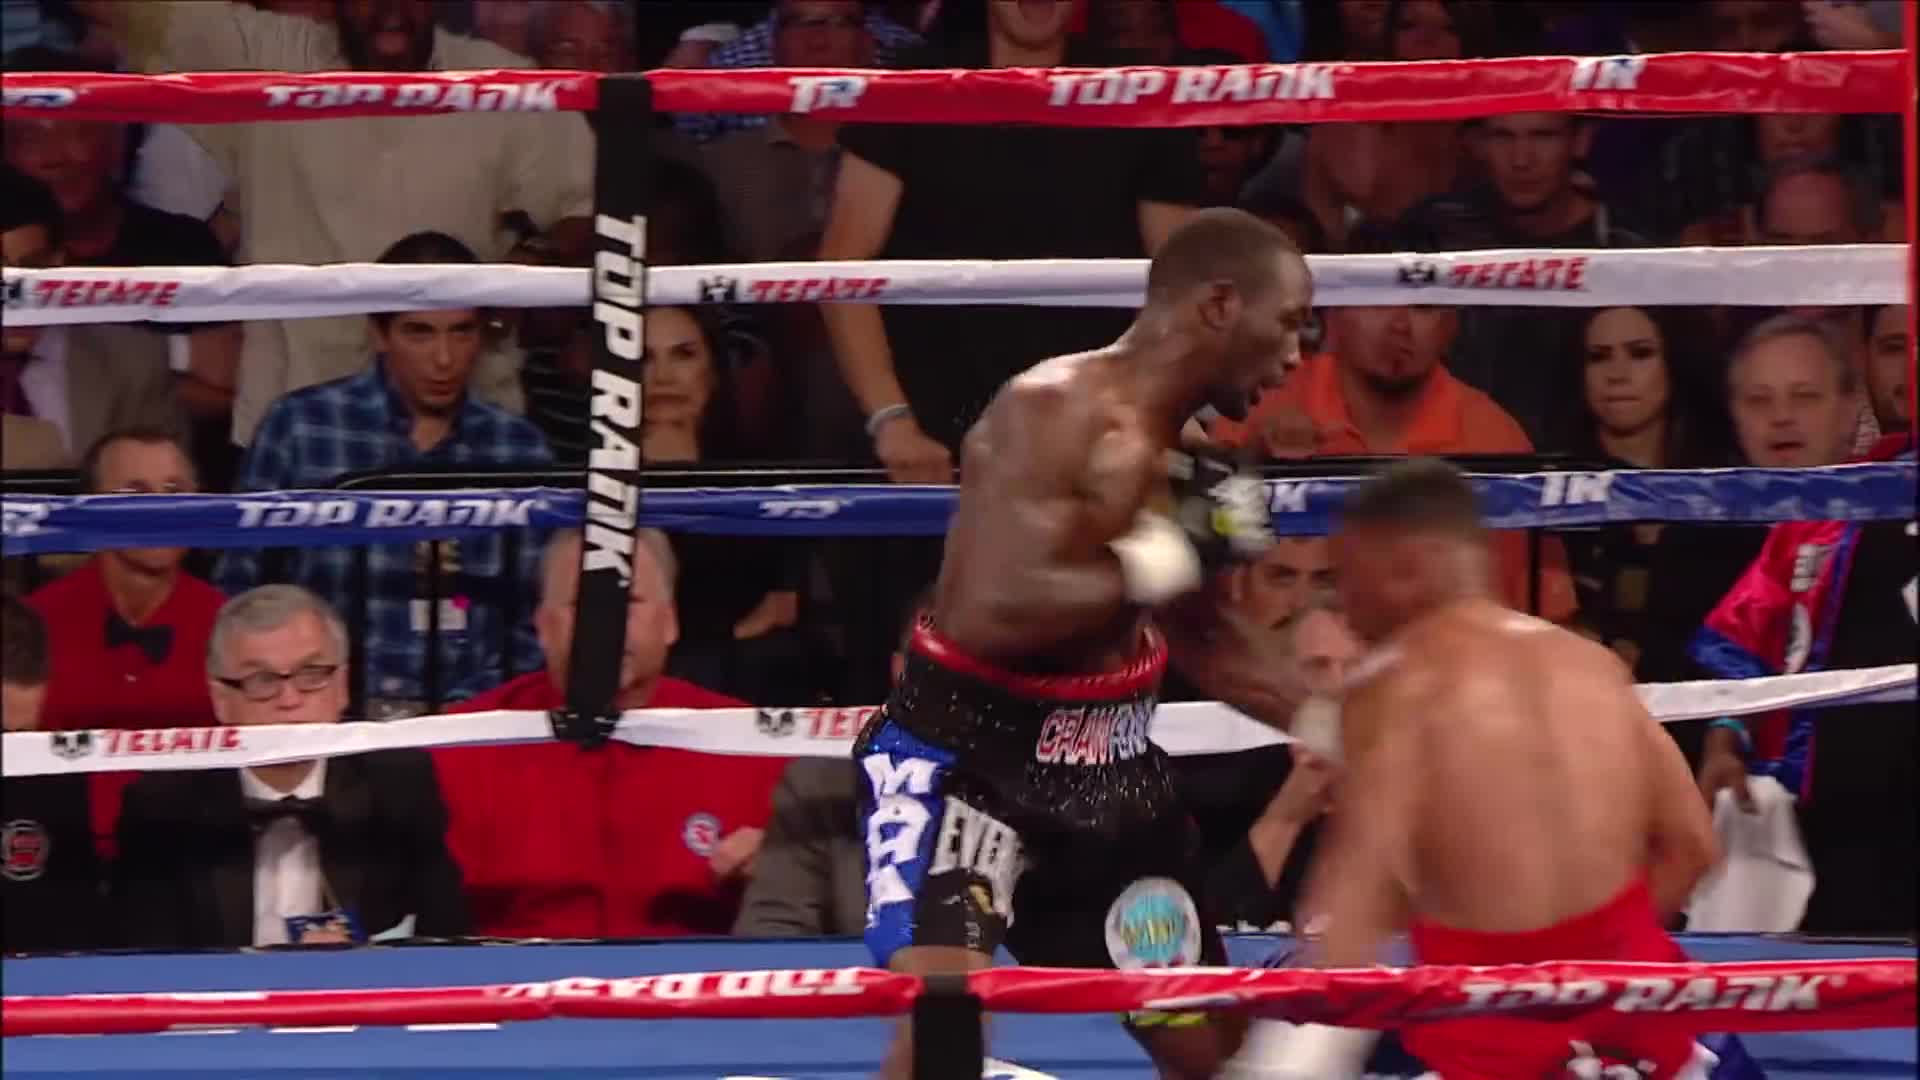 Boxing (Sport), Fight Of The Year, Yuriorkis Gamboa (Boxer), boxing, boxing (sport), fight of the year, sports, terence crawford, yuriorkis gamboa (boxer), Fight of the Year: Crawford-Gamboa GIFs